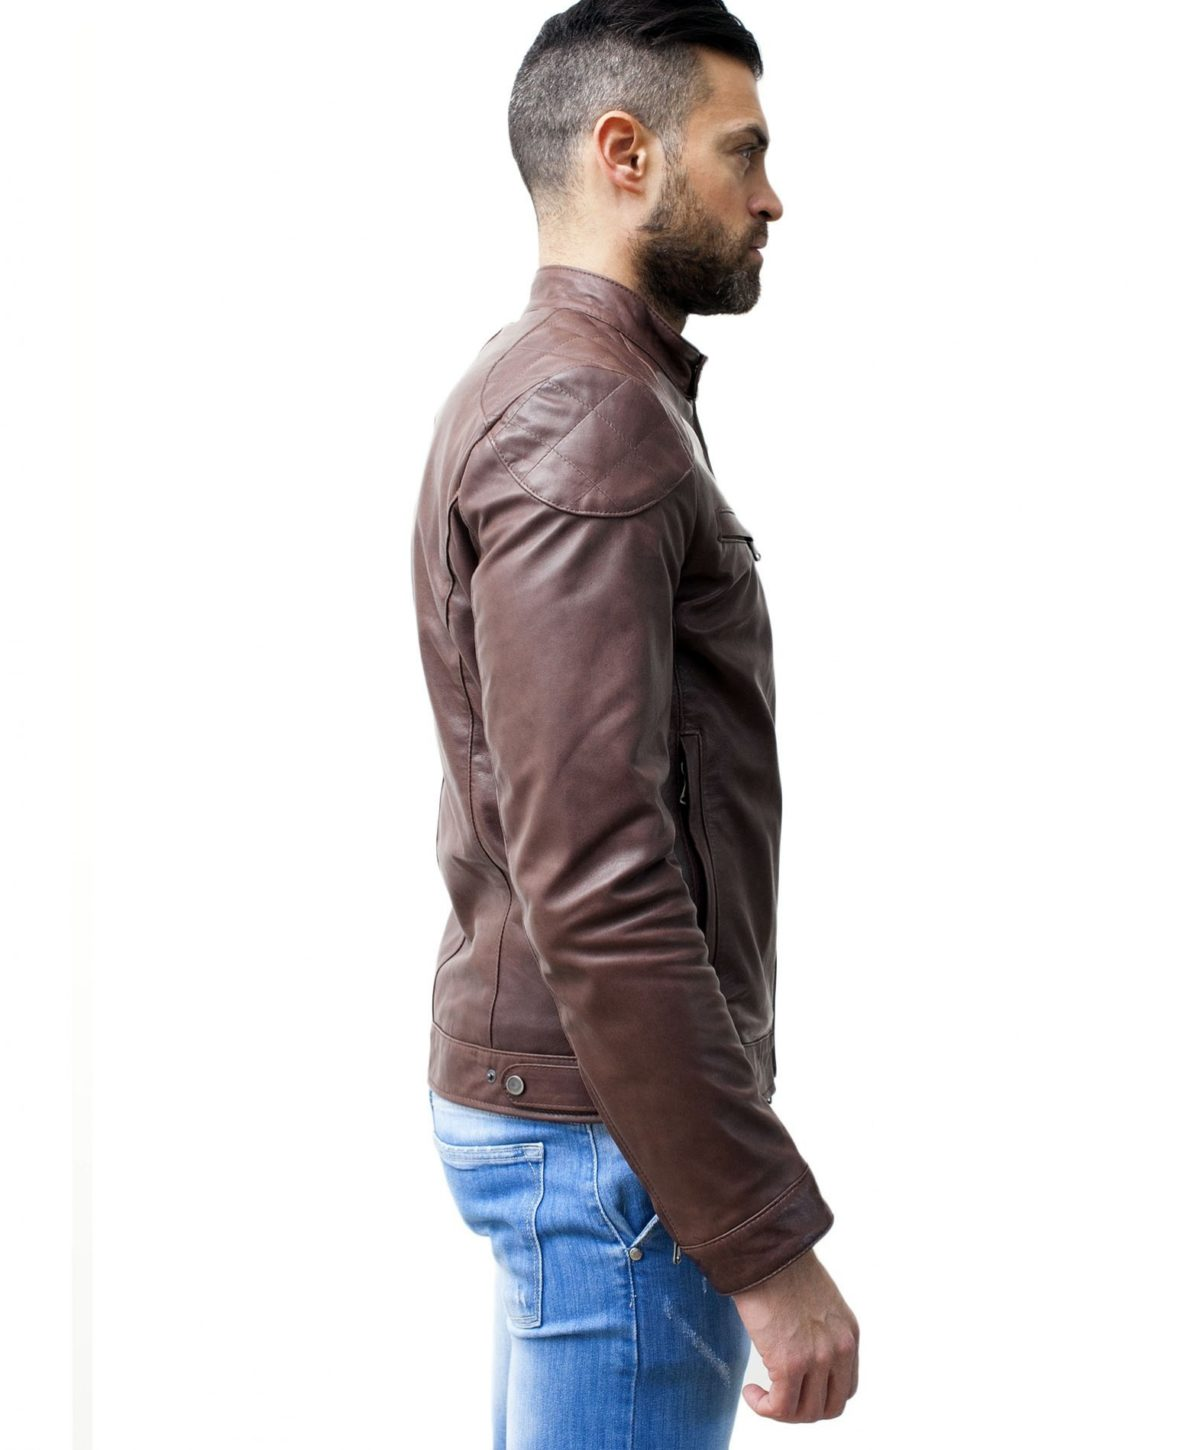 men-s-leather-jacket-genuine-soft-leather-biker-mao-collar-quilted-yoke-brown-color-u410brown (2)